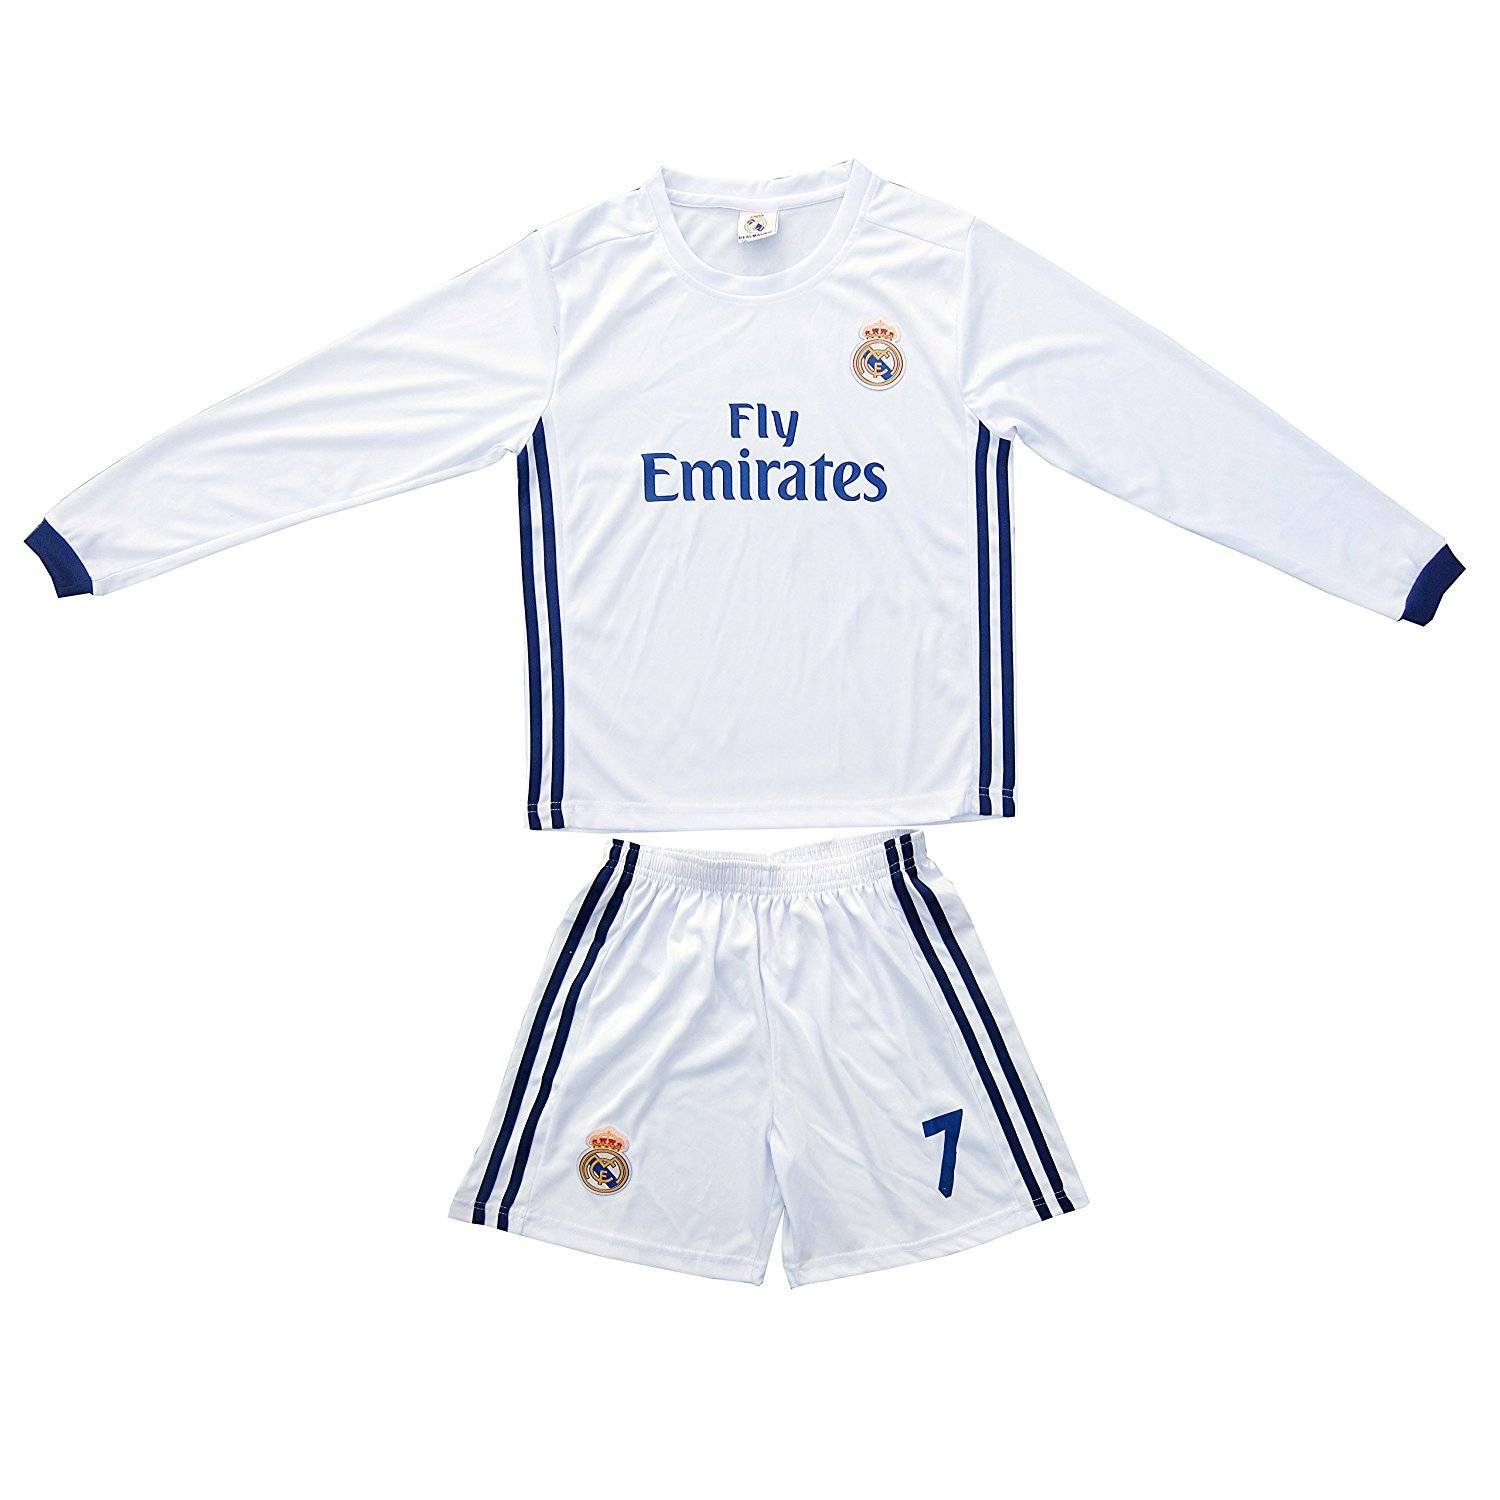 huge discount ce3e2 198f2 Buy 2015/2016 REAL MADRID #7 RONALDO KIDS HOME LONG SLEEVE ...